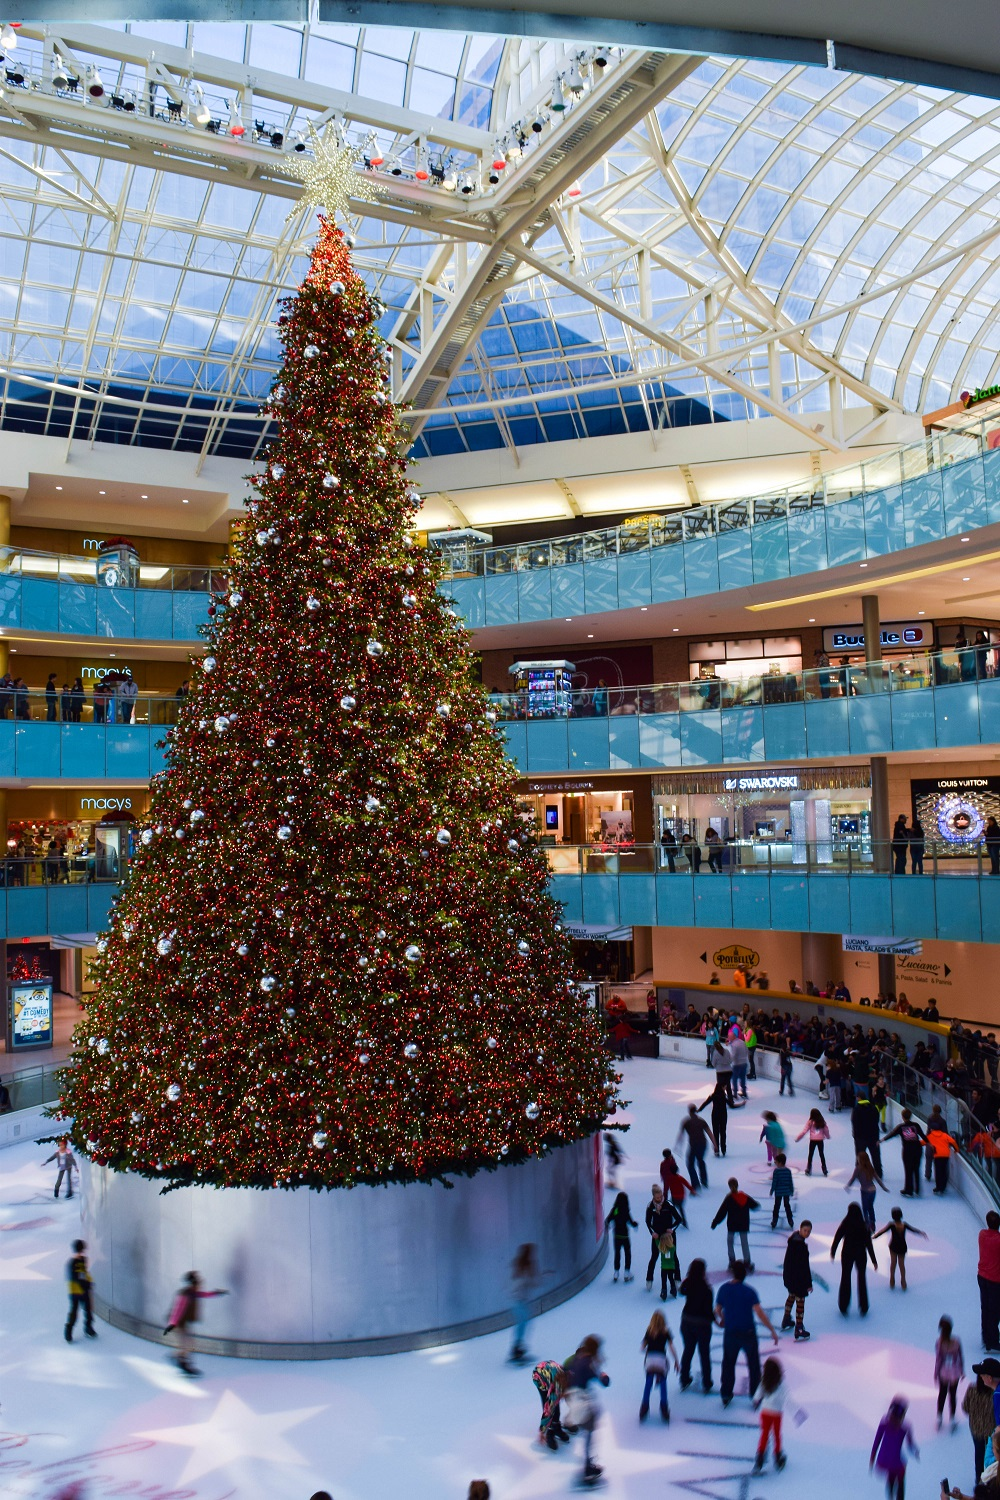 Galleria Christmas Tree